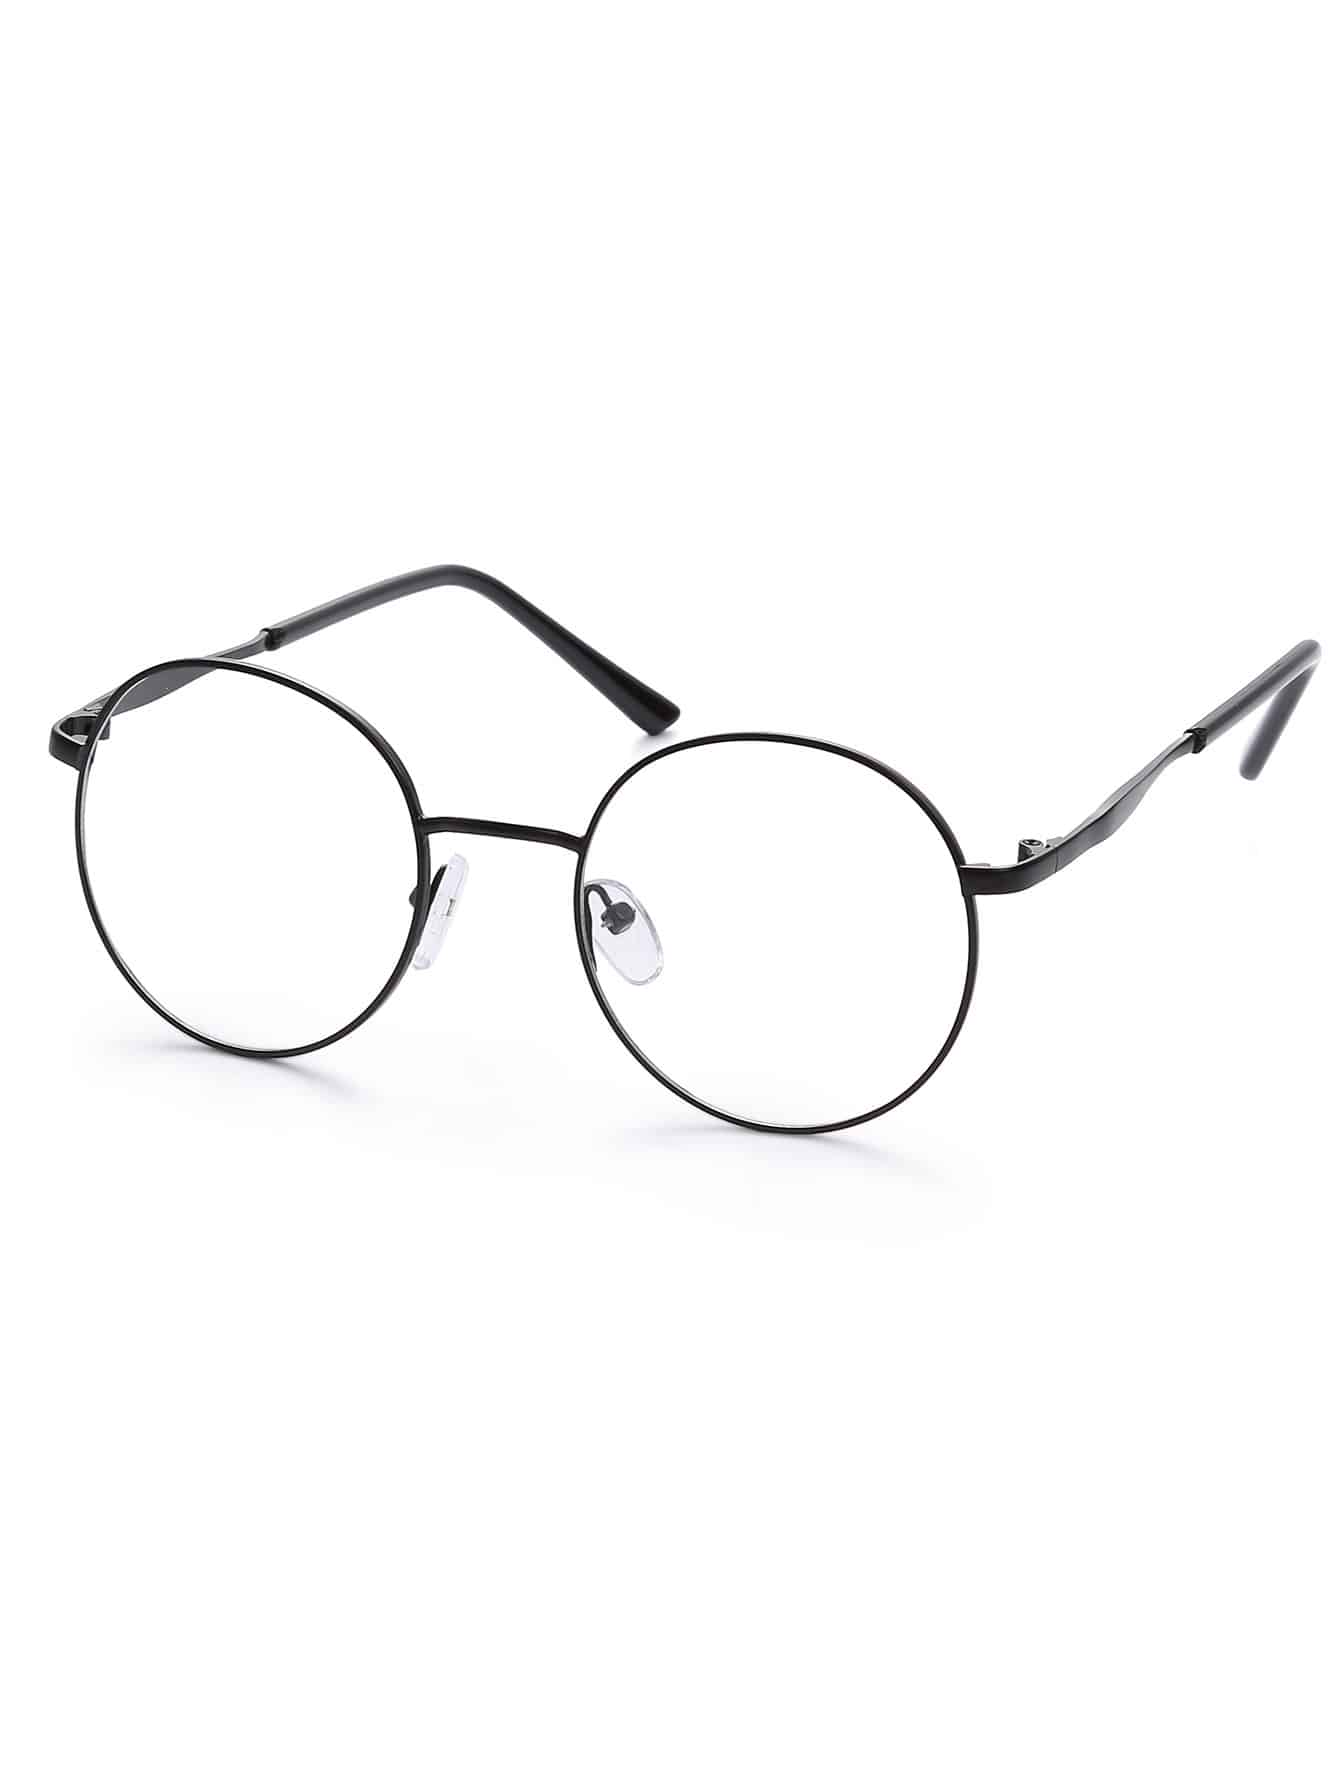 Black Metal Frame Glasses : Black Metal Frame Round Glasses